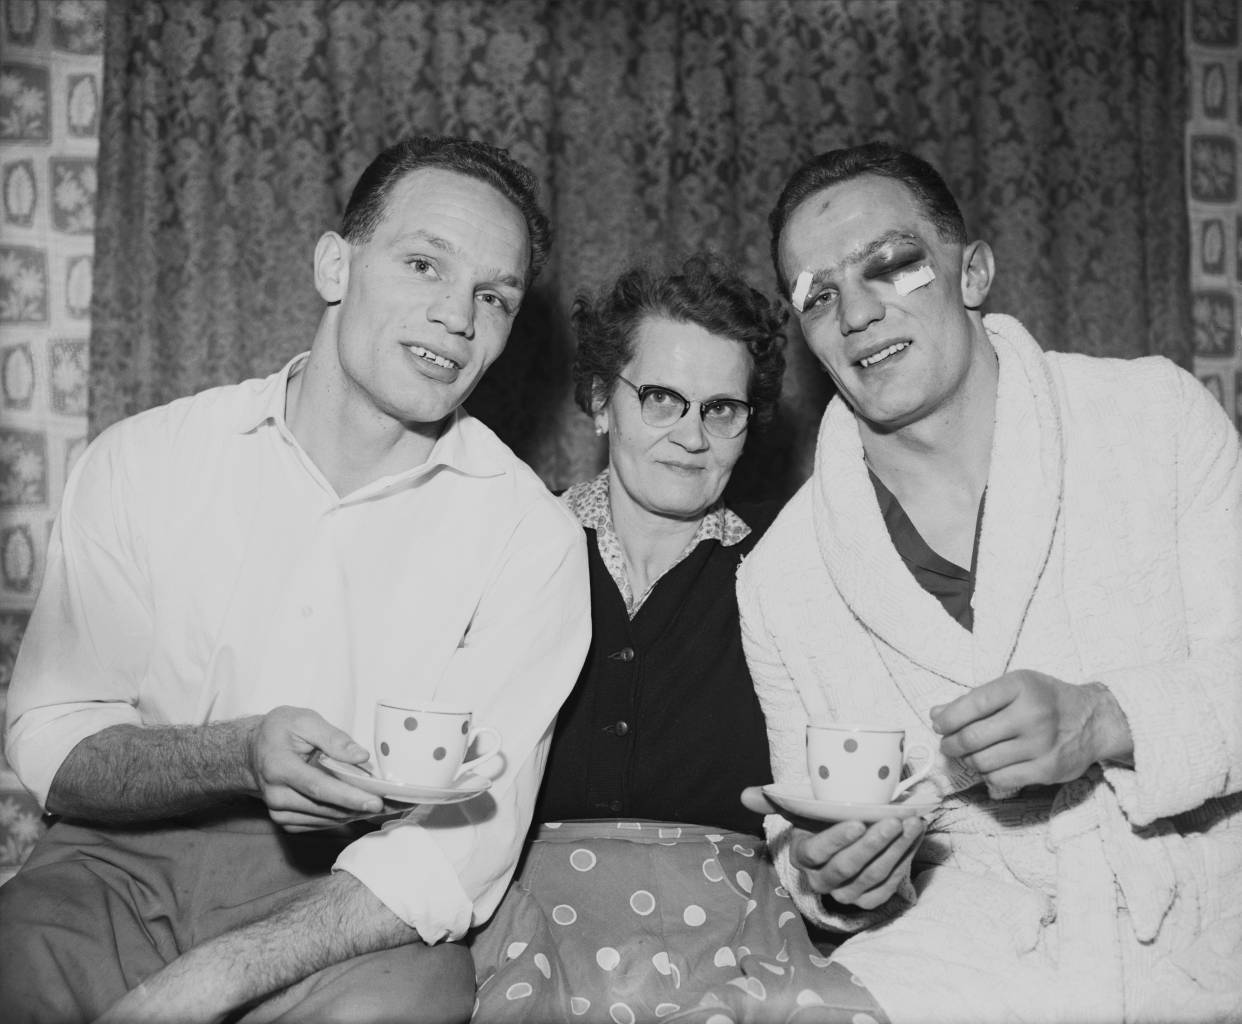 British boxer Henry Cooper (1934 - 2011, right) with his twin brother George (1934 - 2010), and their mother Lily at their home in Bellingham, south London, 13th January 1959. Henry is injured after his previous night's fight against Brian London, in which he won the Commonwealth (British Empire) heavyweight title. George boxed using the name Jim Cooper. (Photo by Reg Speller/Fox Photos/Hulton Archive/Getty Images)